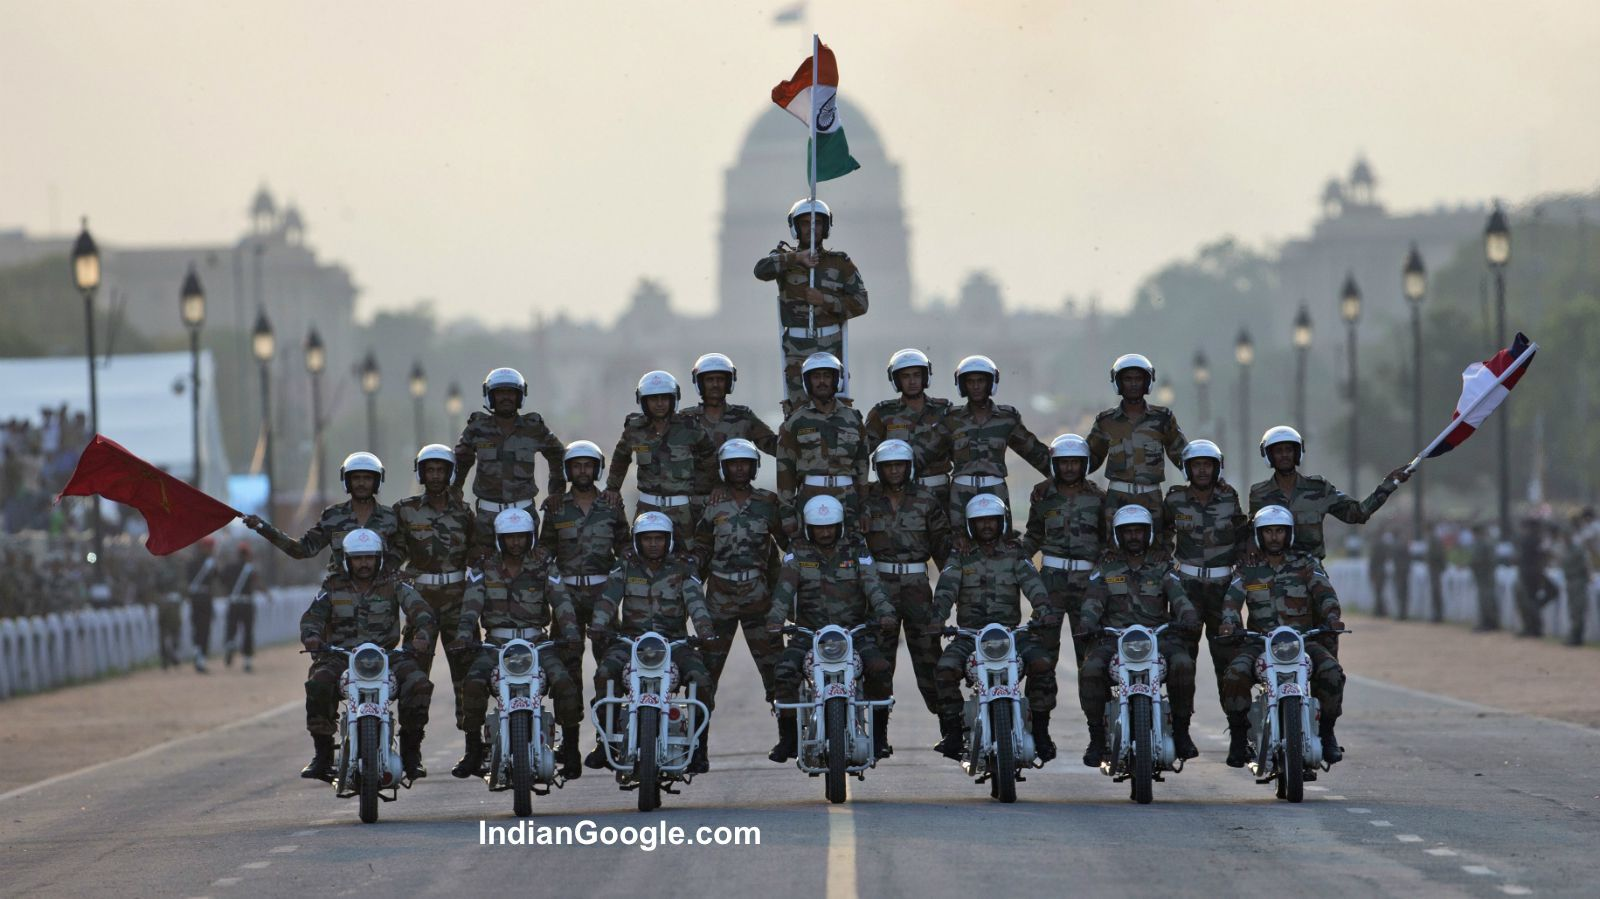 Military wallpapers top free military backgrounds wallpaperaccess - Indian army wallpaper hd ...